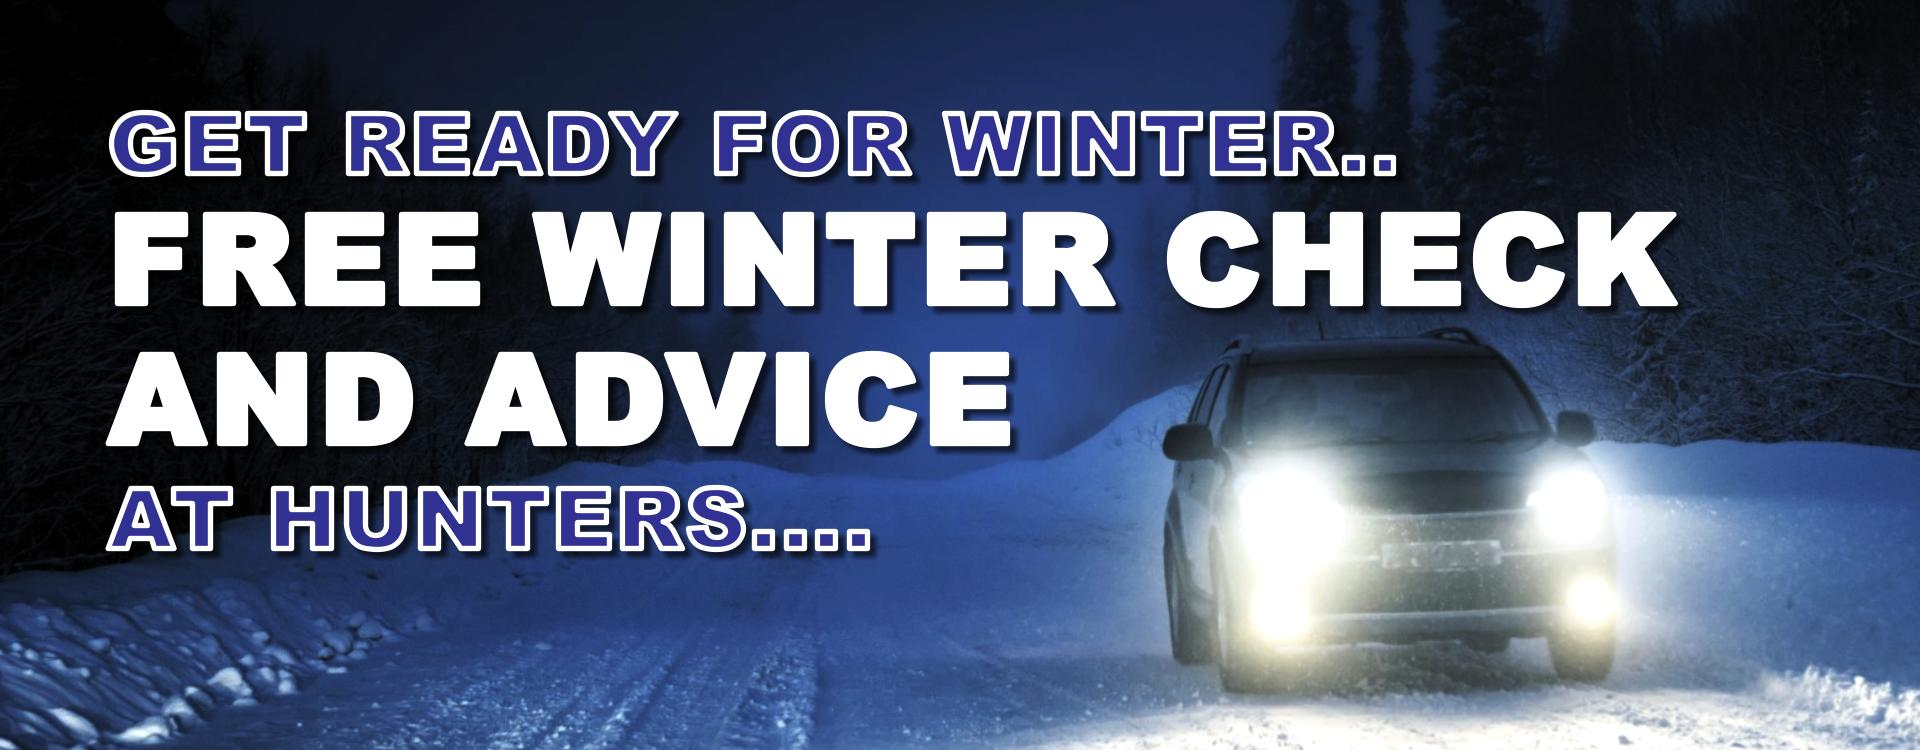 winter check banner